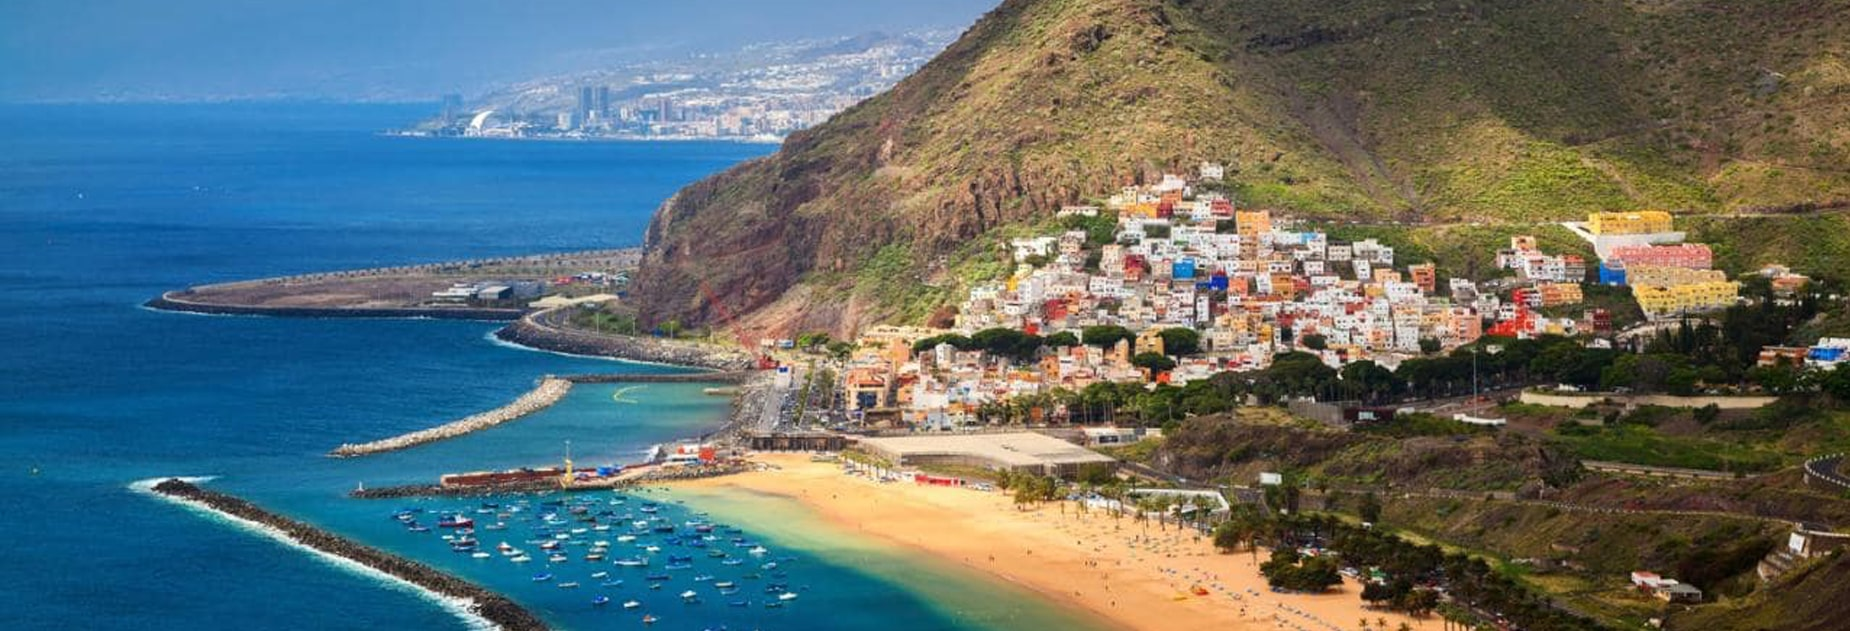 business-class-flights-Tenerife